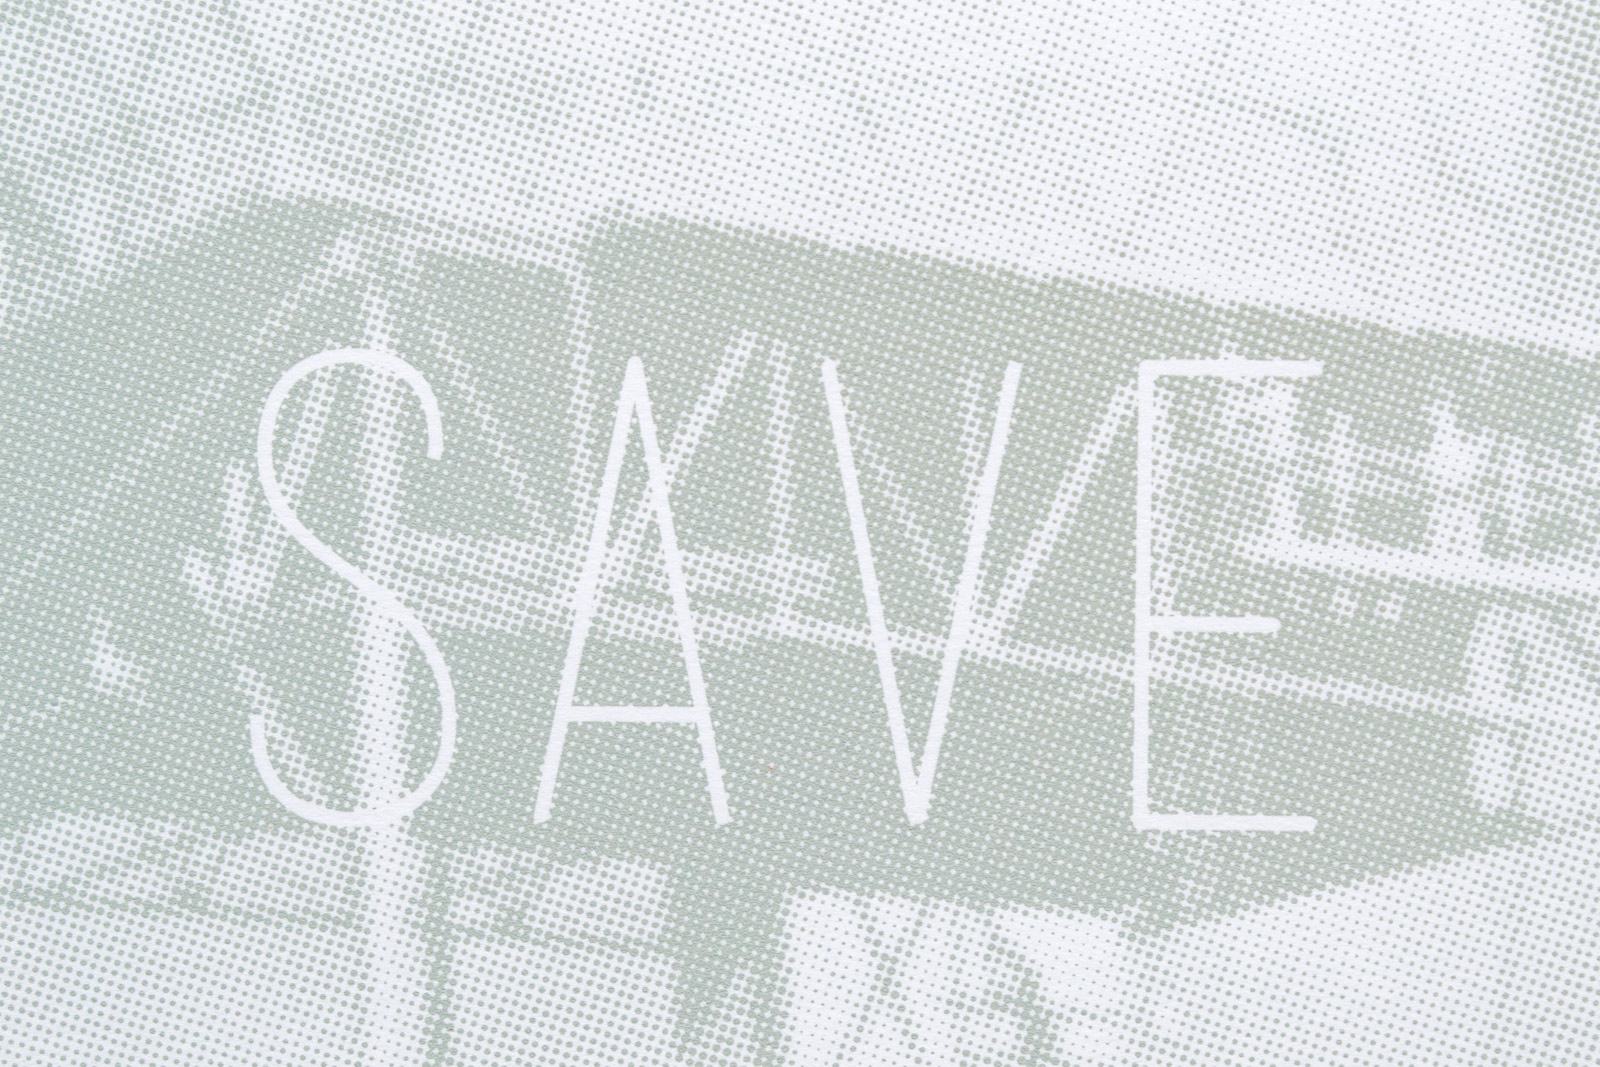 save (metapop series)